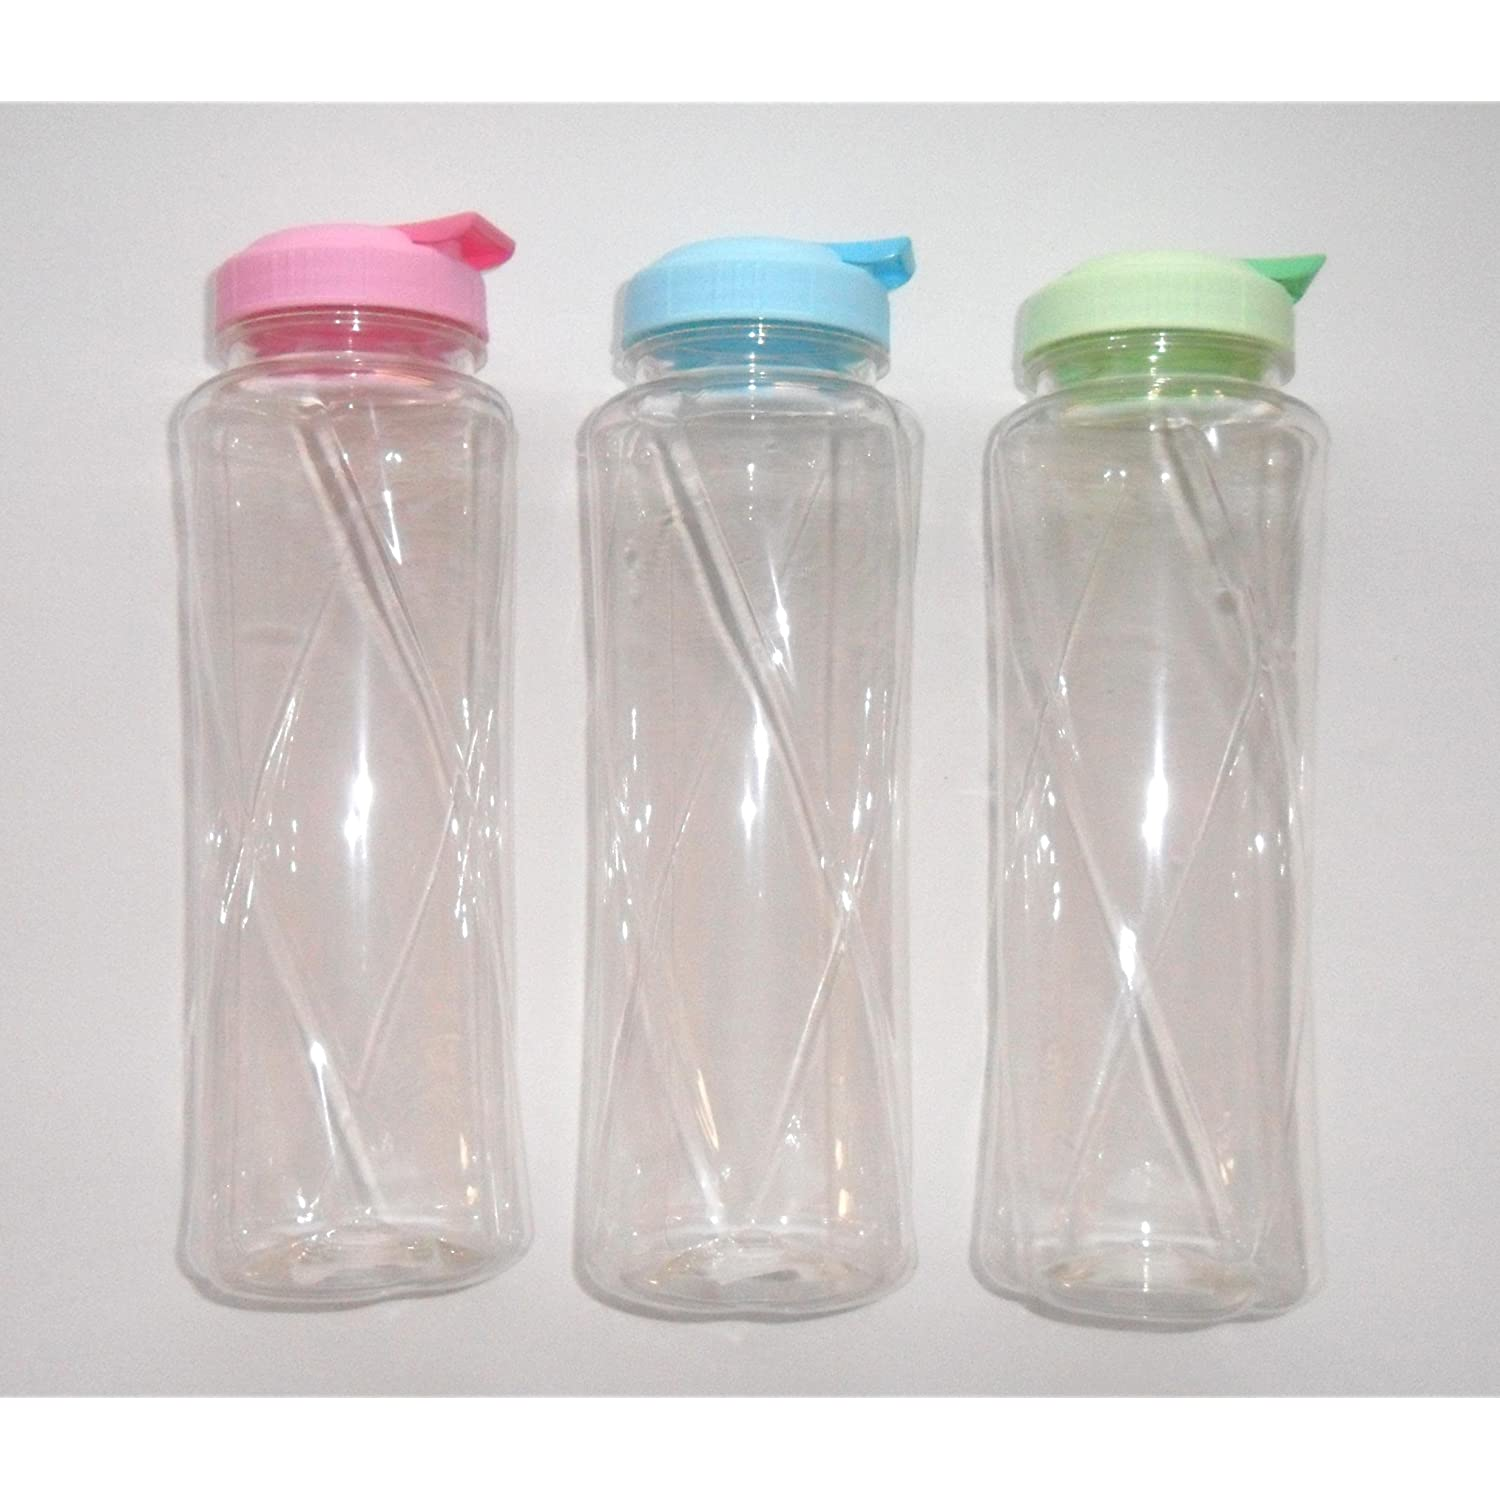 BPA Free Plastic Acrylic Tumbler Sports Water Bottle 32 oz. Set of 3 from DDHQ